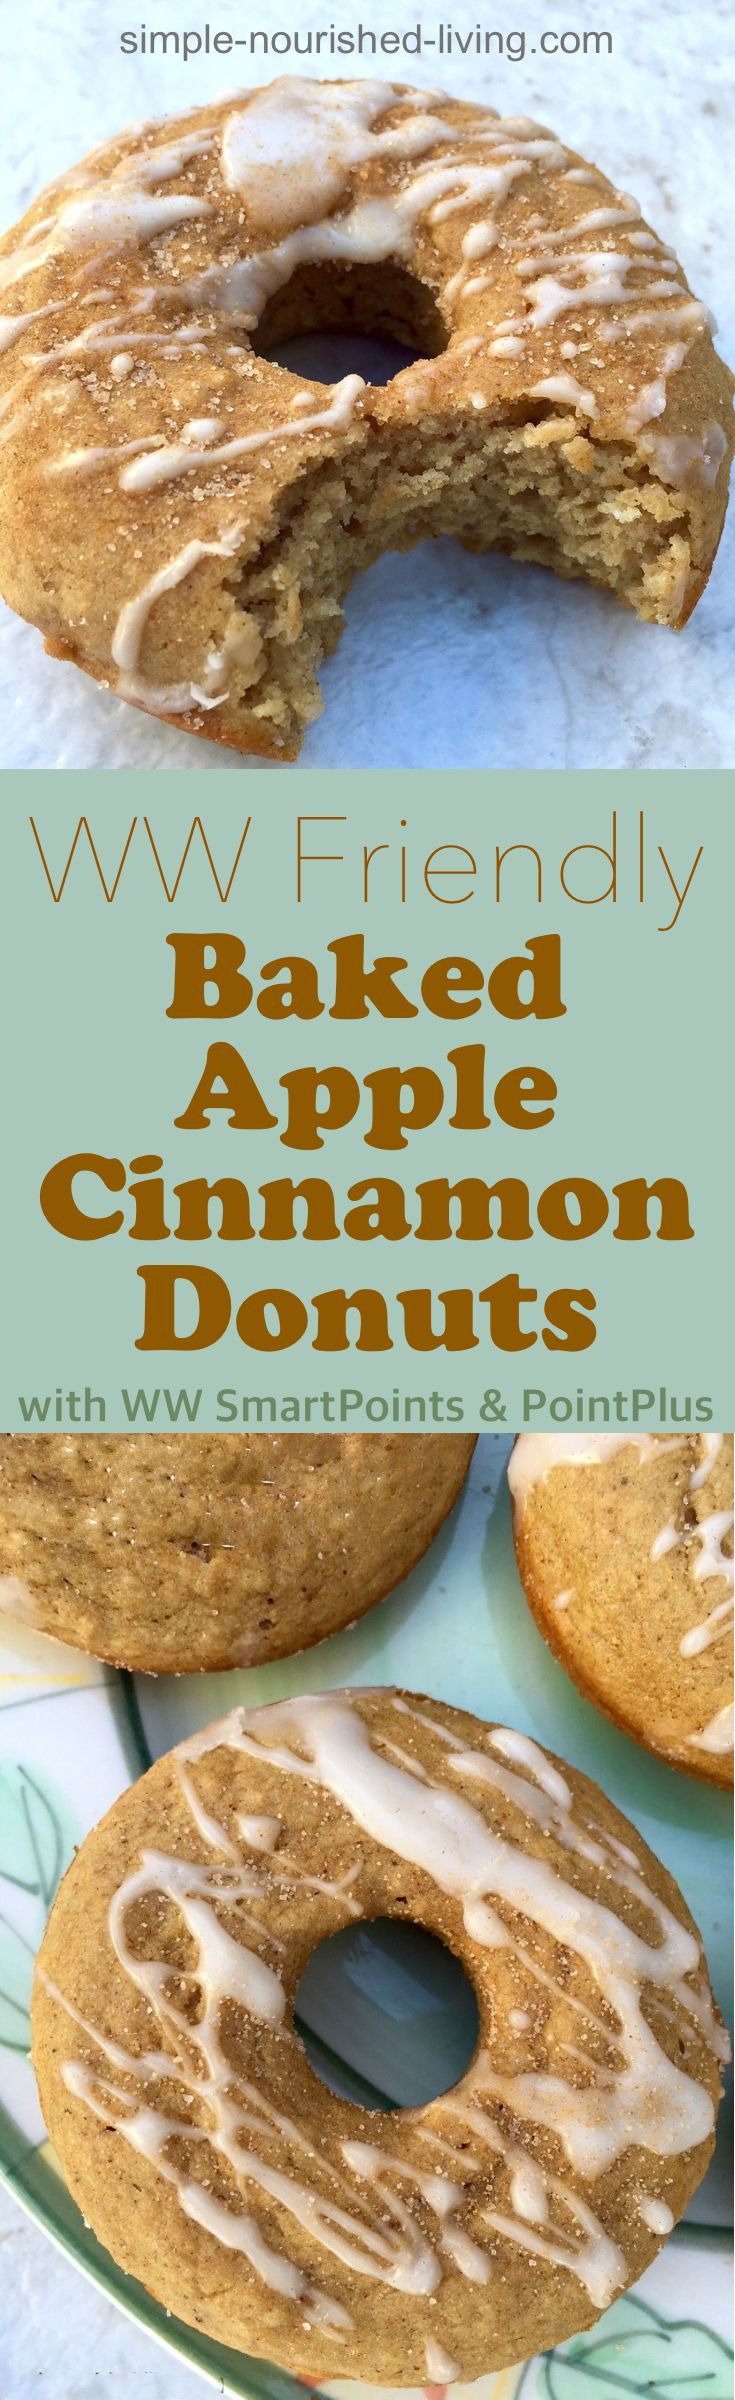 The delicious, still warm-from-the-oven Baked Apple Cinnamon Doughnuts are able to satisfy my craving for a sweet treat, while avoiding the sugar rush I get from the bakeshop variety. *4 Weight Watchers PointsPlus, *5 SmartPoints | Simple-Nourished-Living.com